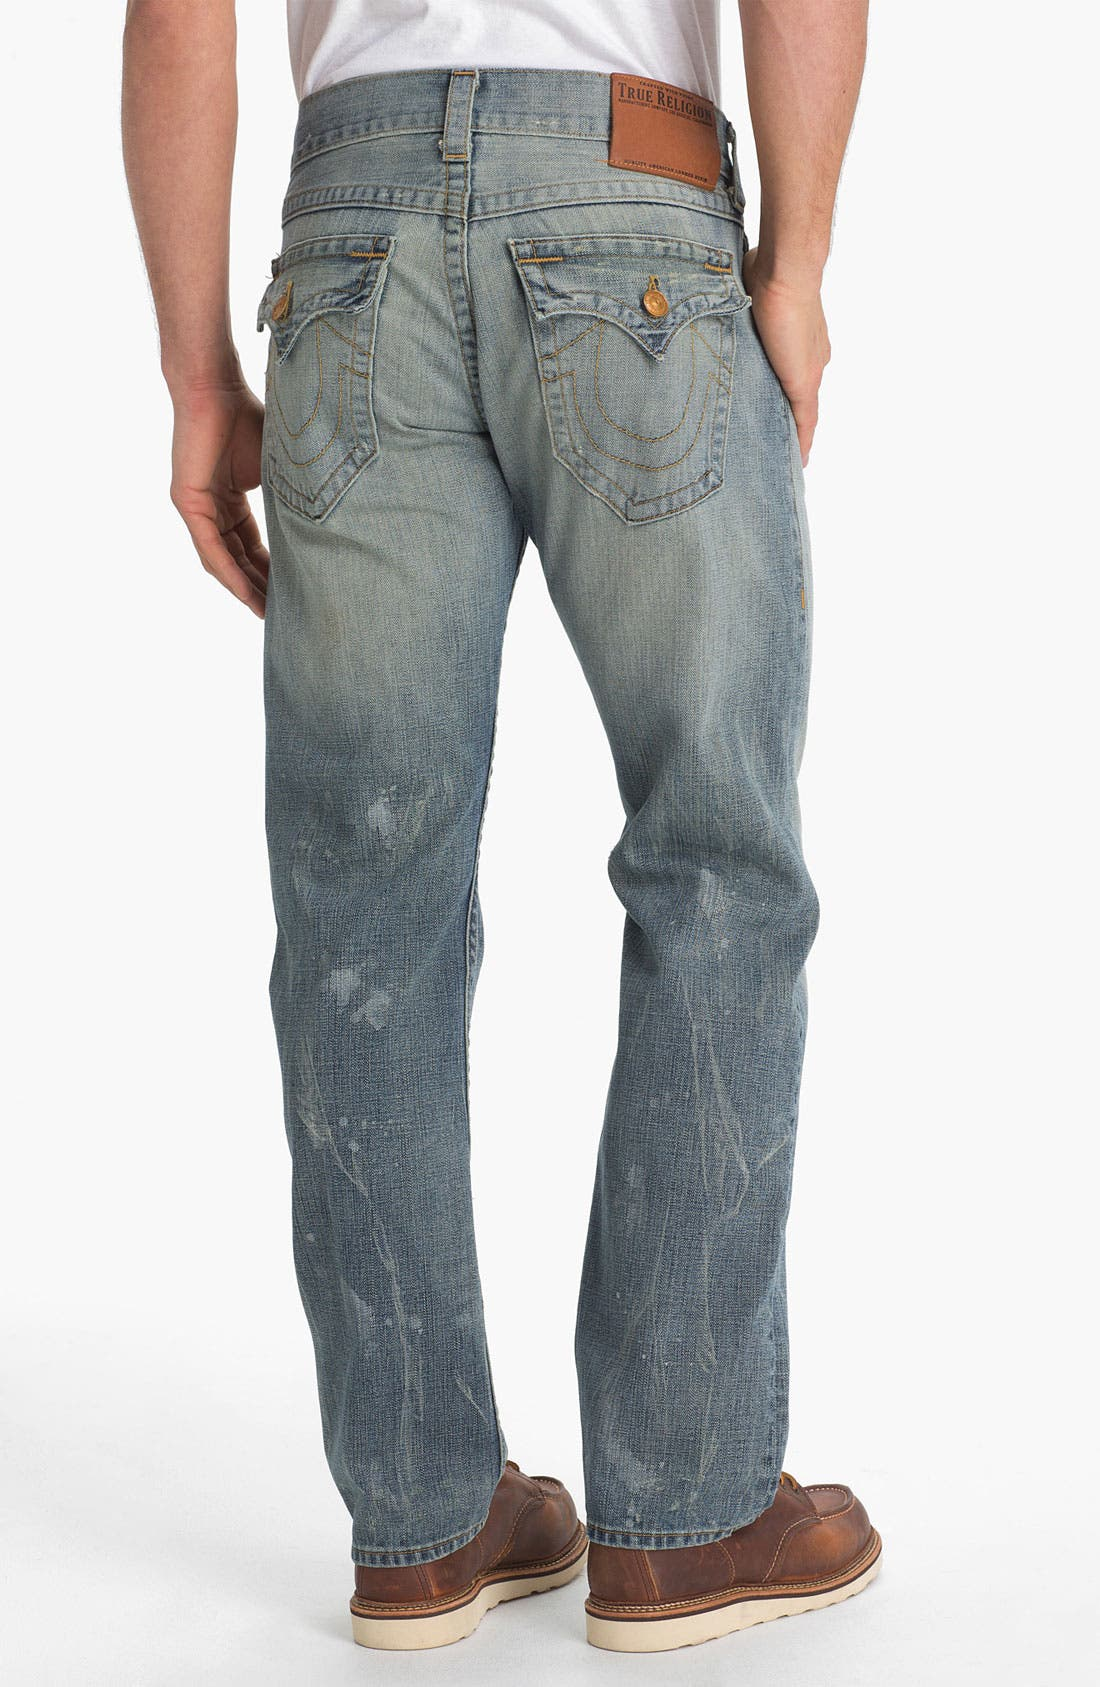 Alternate Image 1 Selected - True Religion Brand Jeans 'Ricky' Straight Leg Jeans (Mule Skinner)